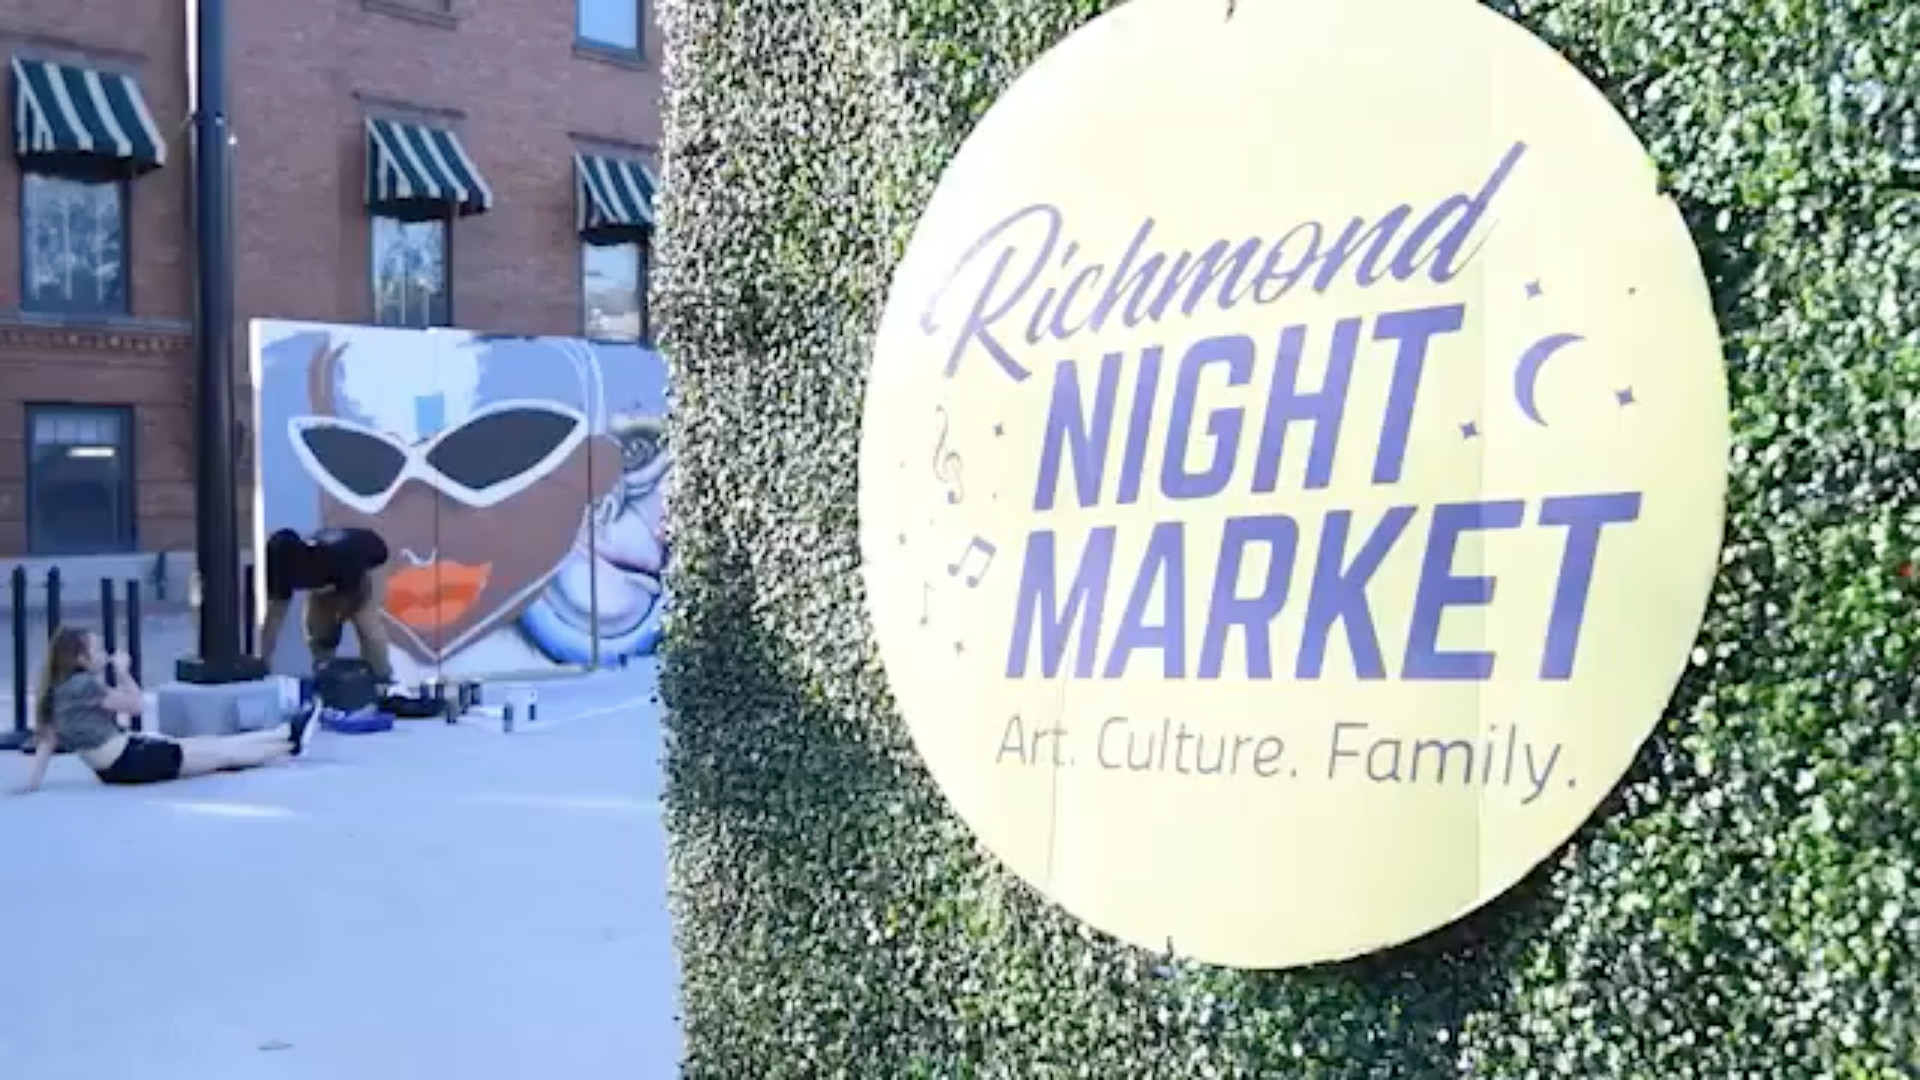 Screenshot from Richmond Night Market video by @bso.creative